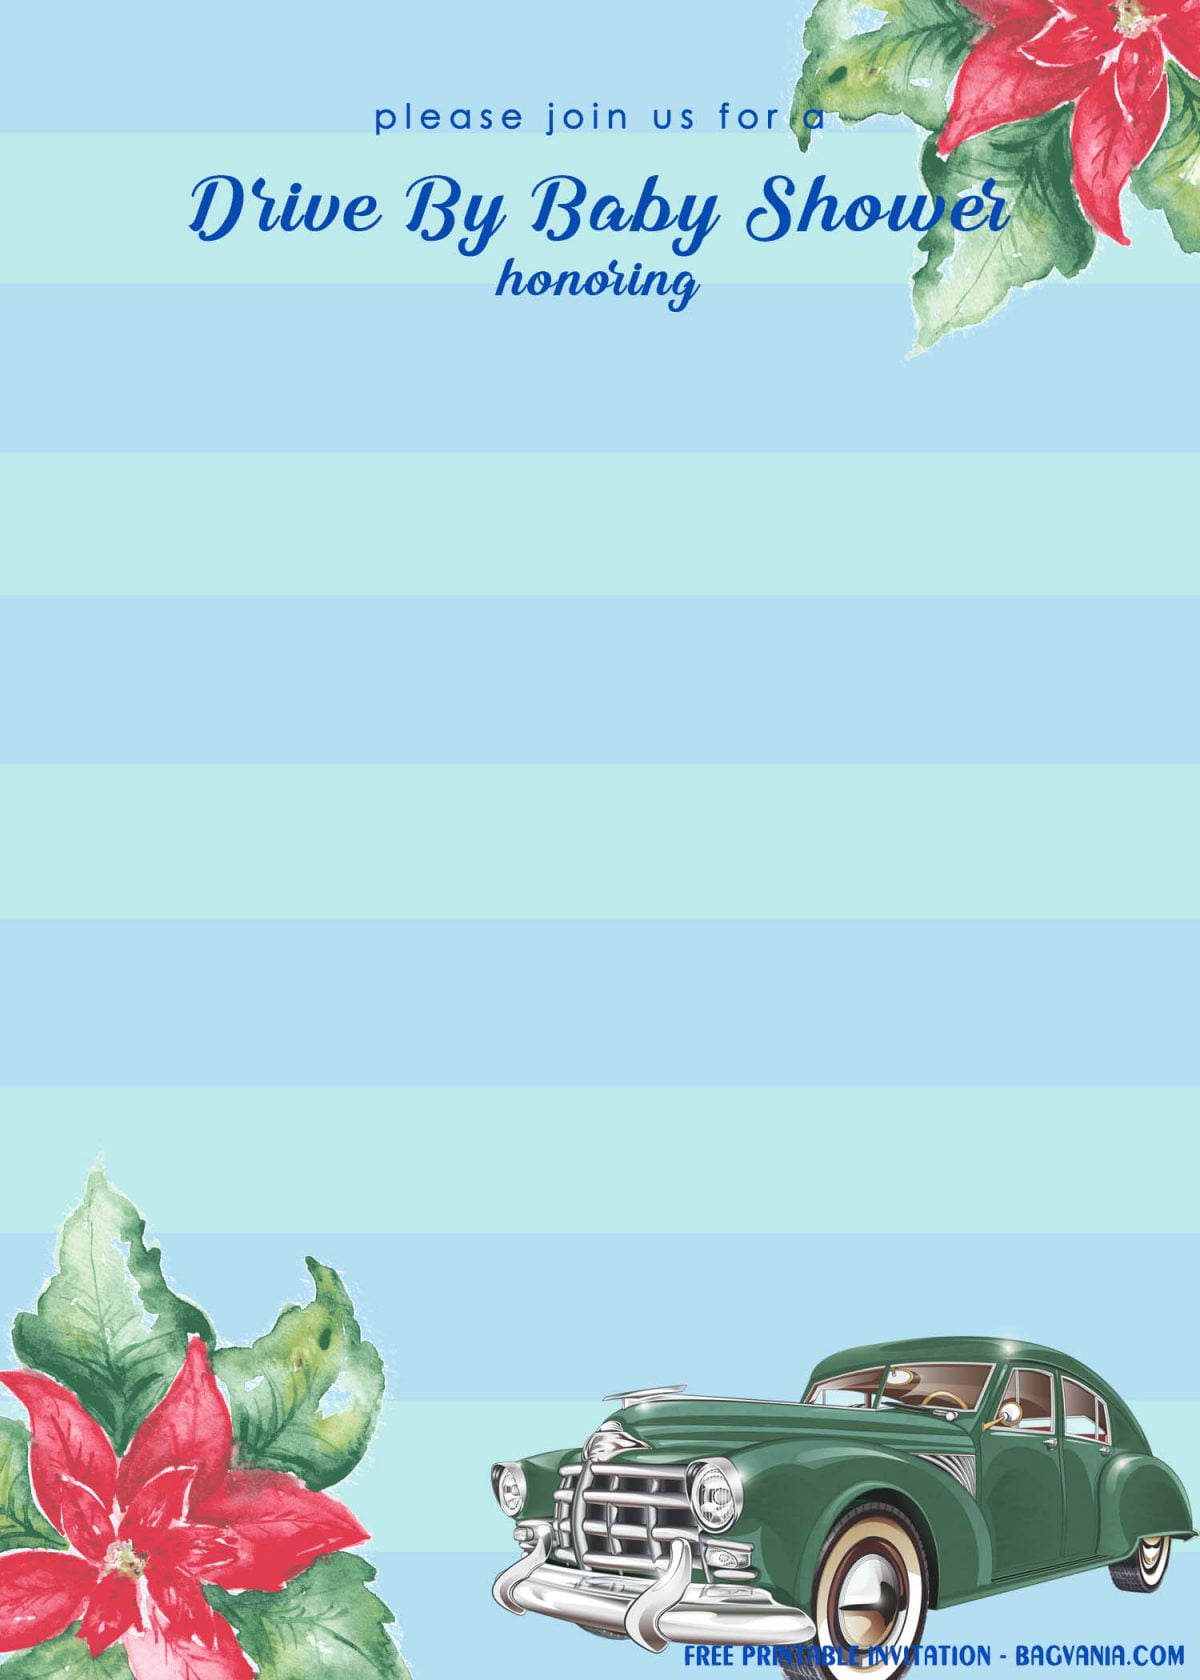 Free Printable Blue Stripes Drive By Baby Shower Invitation Templates With Green Foliage